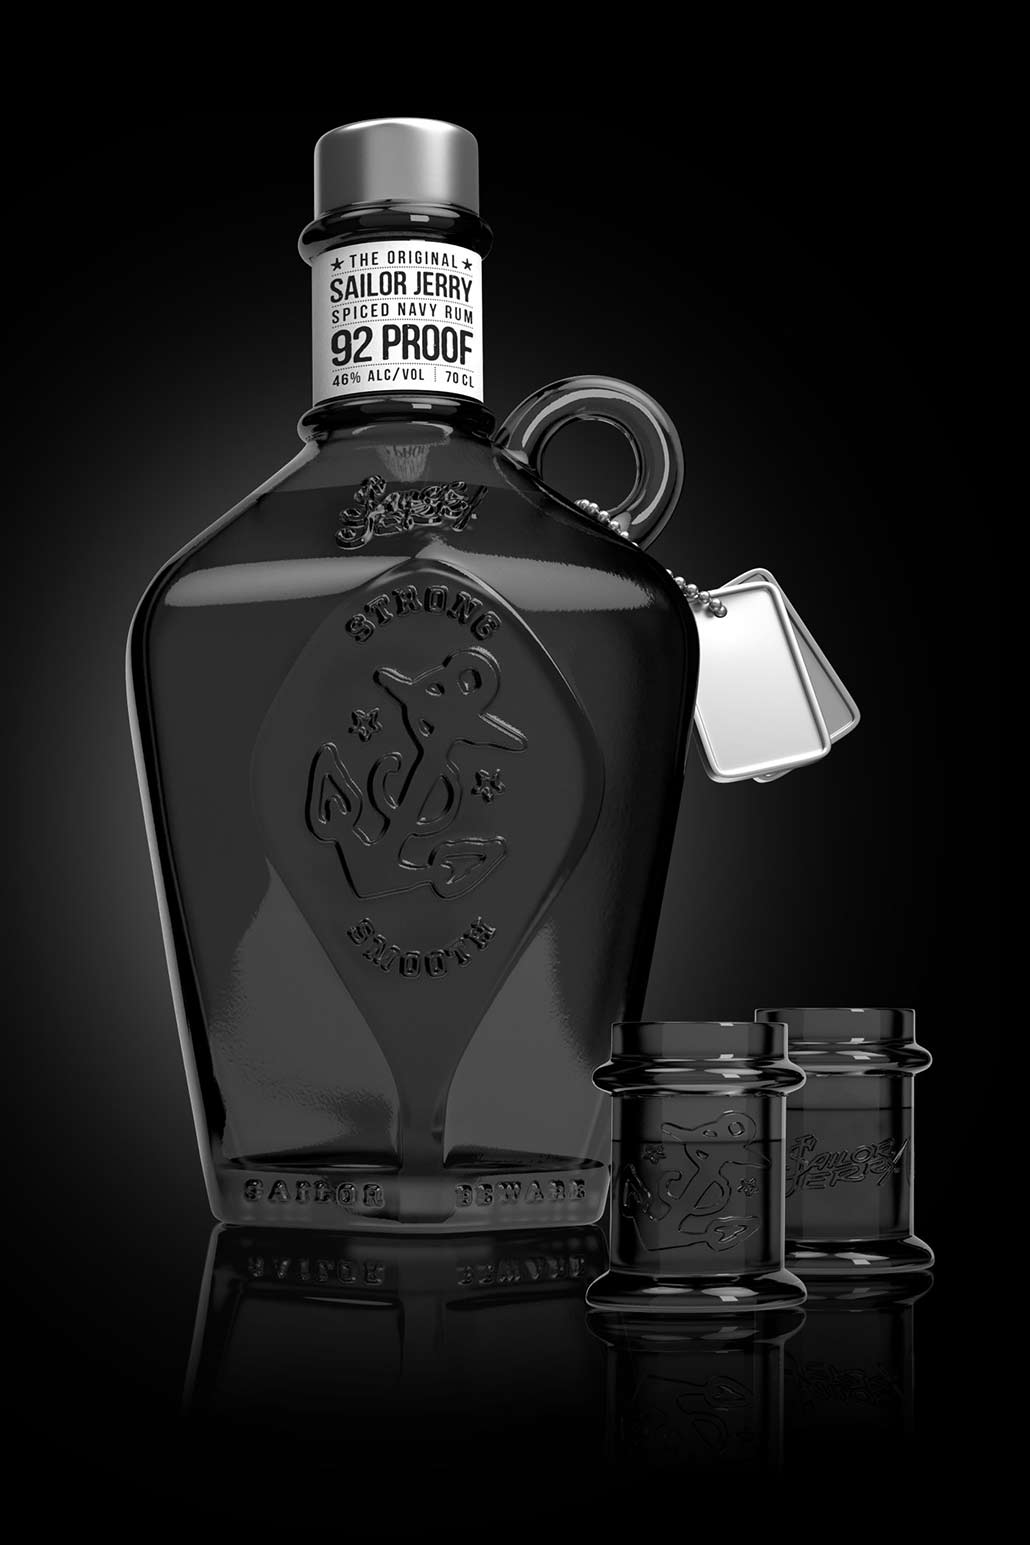 Sailor Jerry, 3D product visual, modelling 3ds max, rendering V-ray